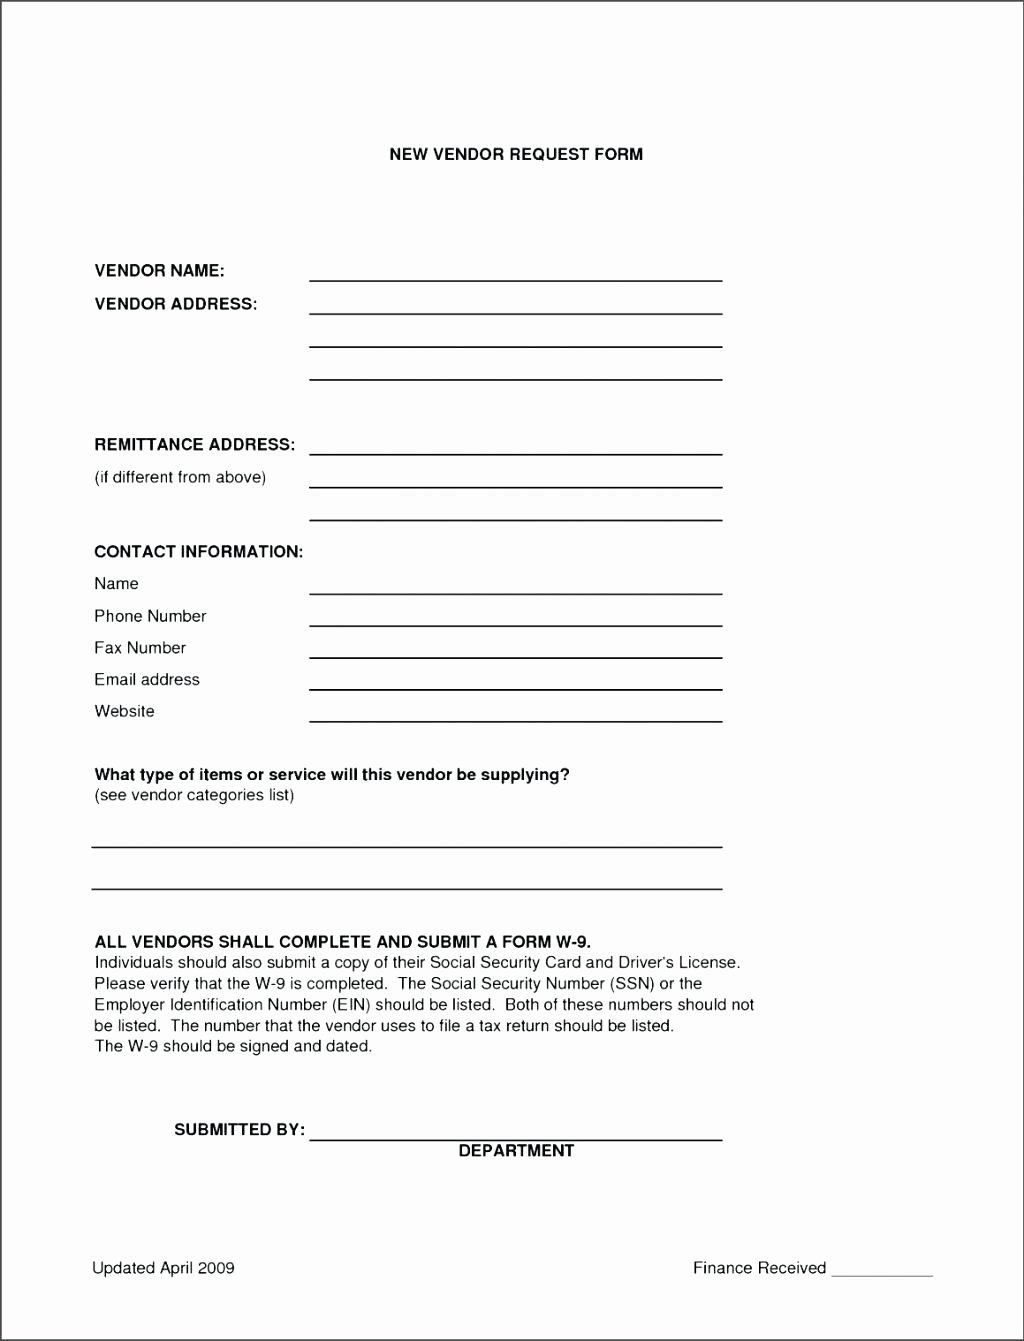 New Vendor Information form Template Luxury New Vendor Information form Template Hunt Hankk